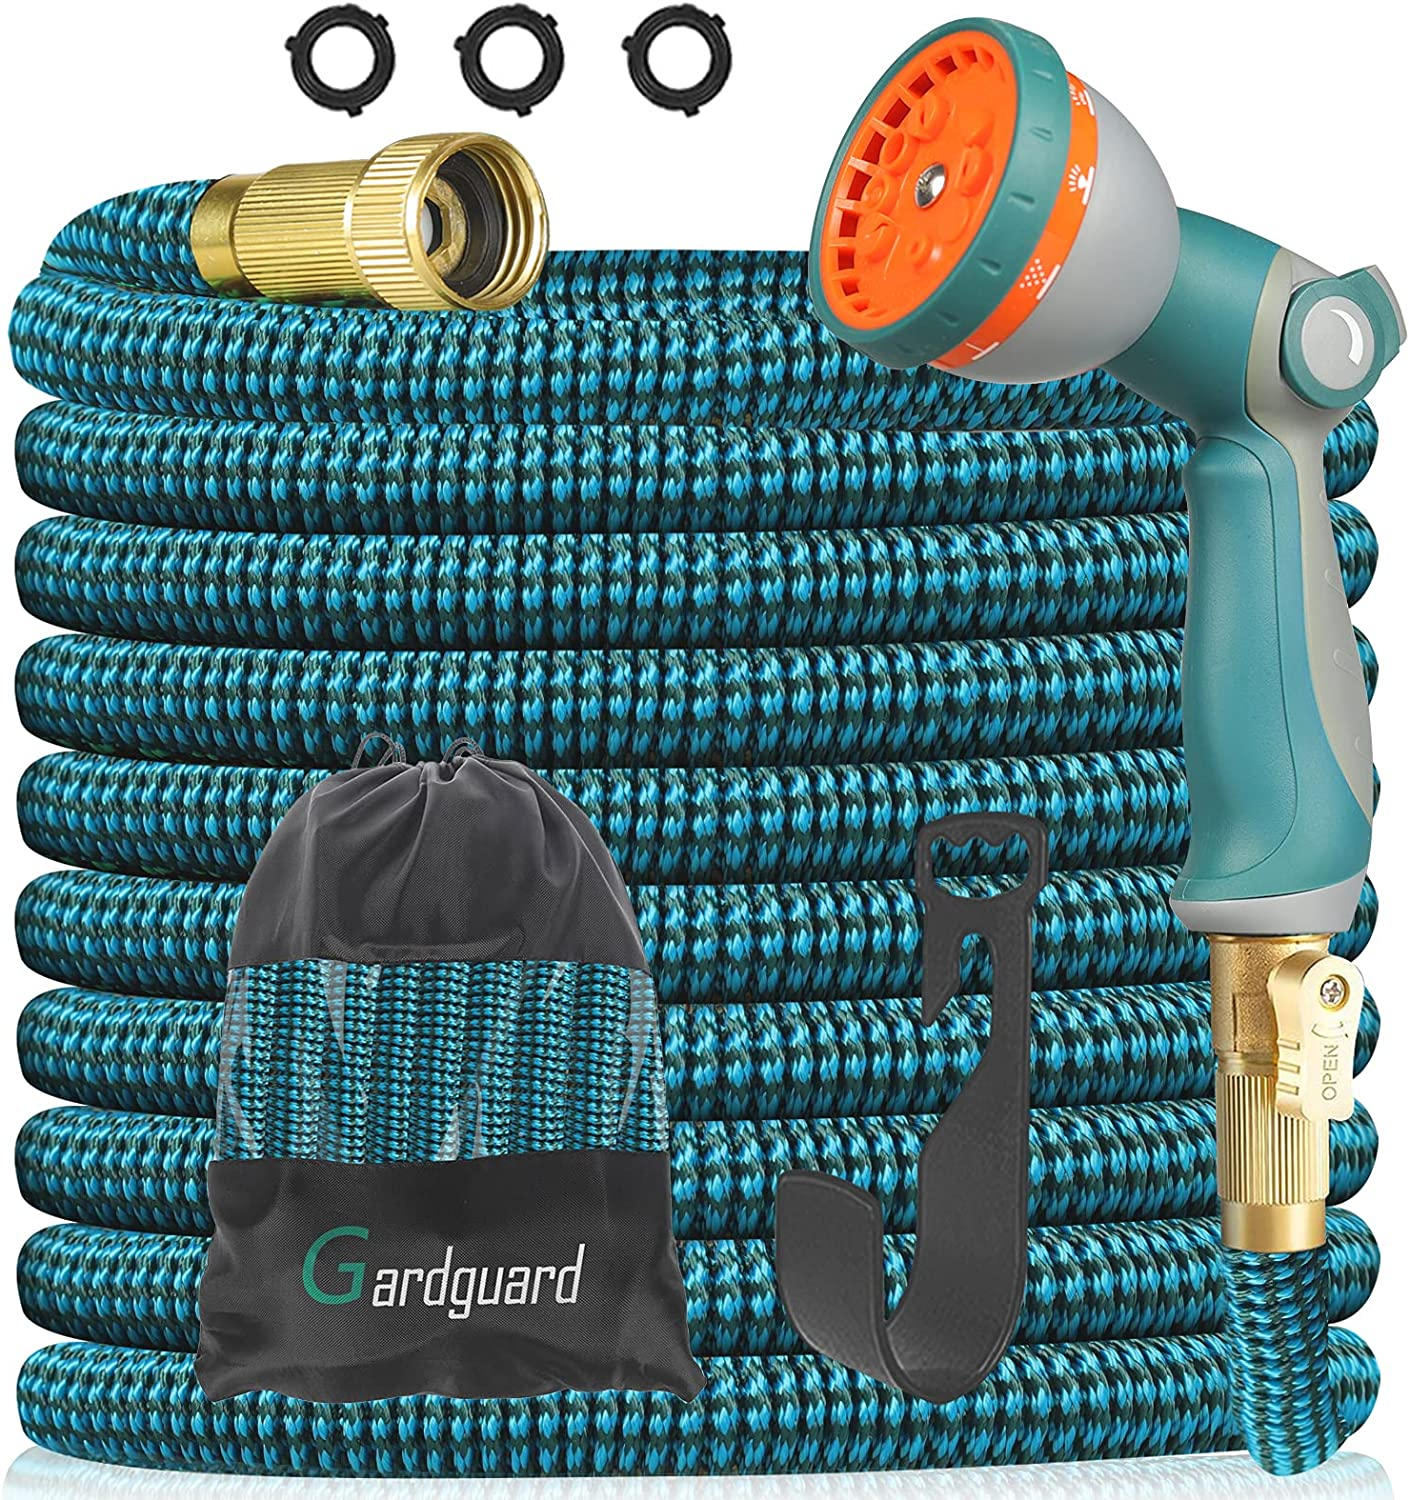 Gardguard 50ft Expandable Garden Hose Water Hose with 10 Function High Pressure Nozzles and 3-layers Latex Lightweight Expanding Wash Hose, 3/4 Connectors Leakproof, Outdoor Yard Watering and Washing